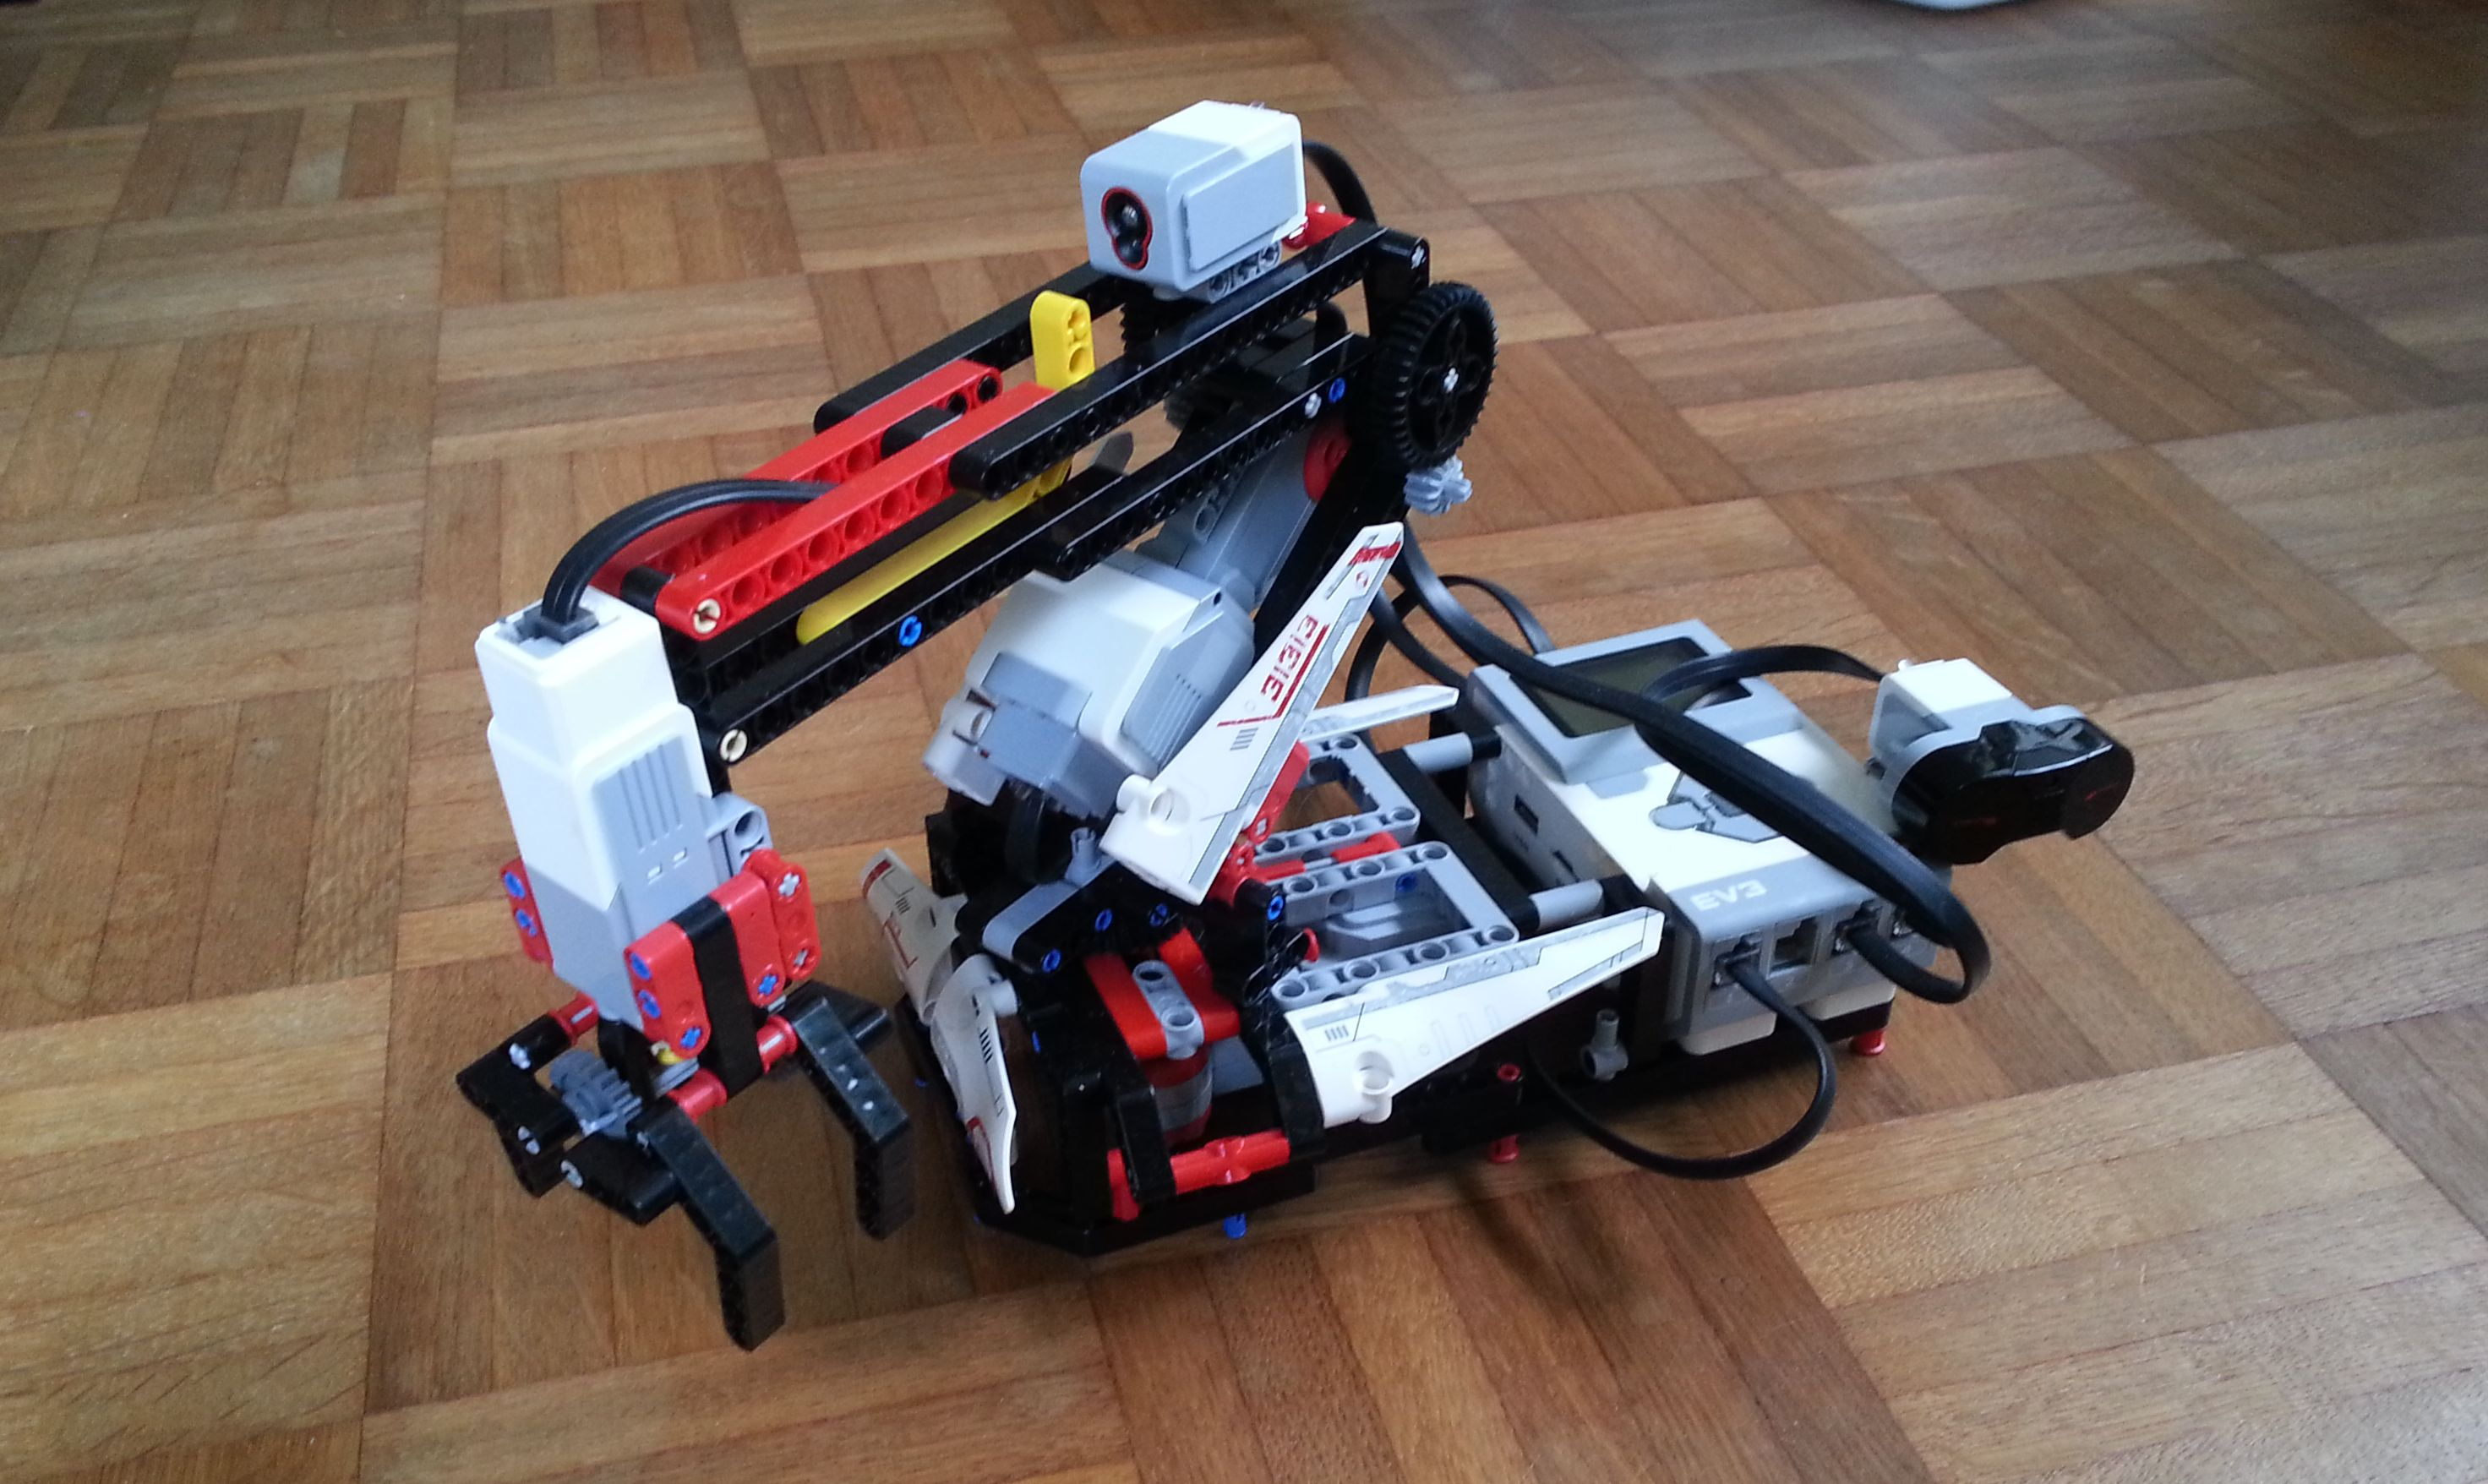 team performance case study lego mindstorms It took a new lego management team--faced with the growing when i taught the case study about the lego turnaround in their financial performance was.